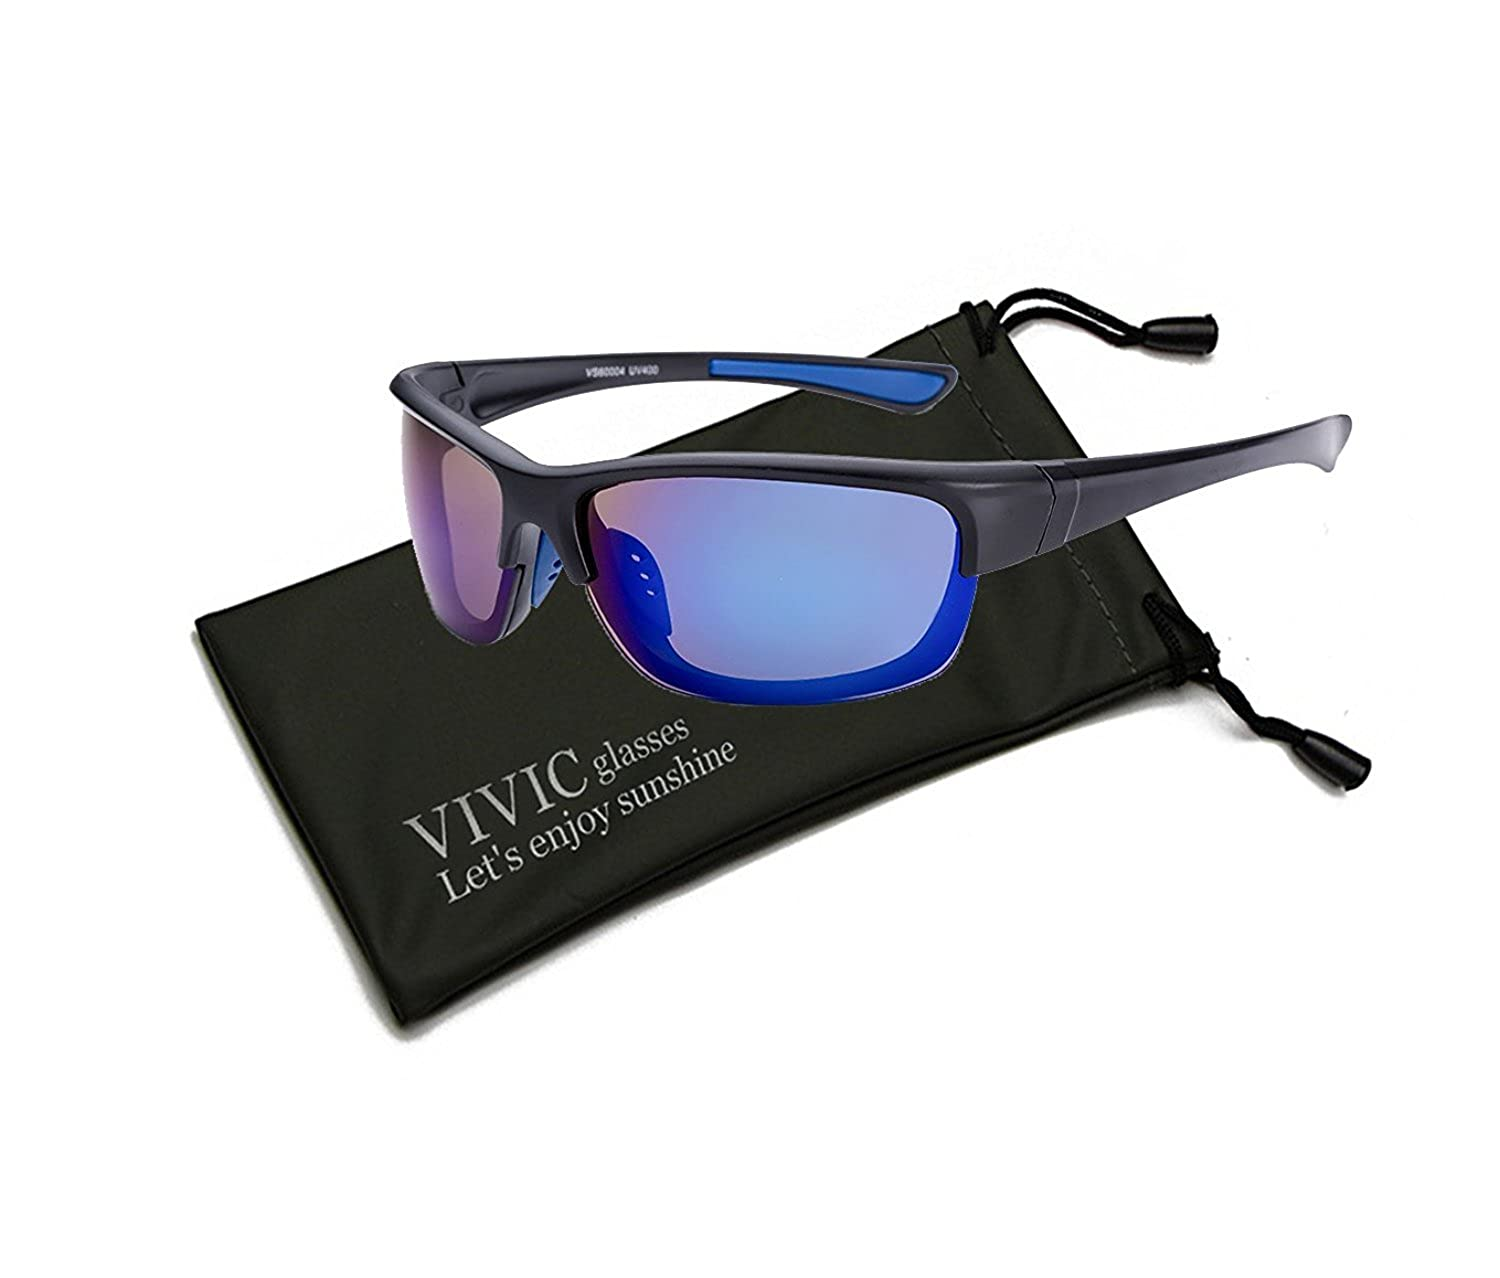 054085bb7be Amazon.com  Sport Sunglasses Polarized for Men Lightweight UV400 VIVIC  (Blue)  Clothing